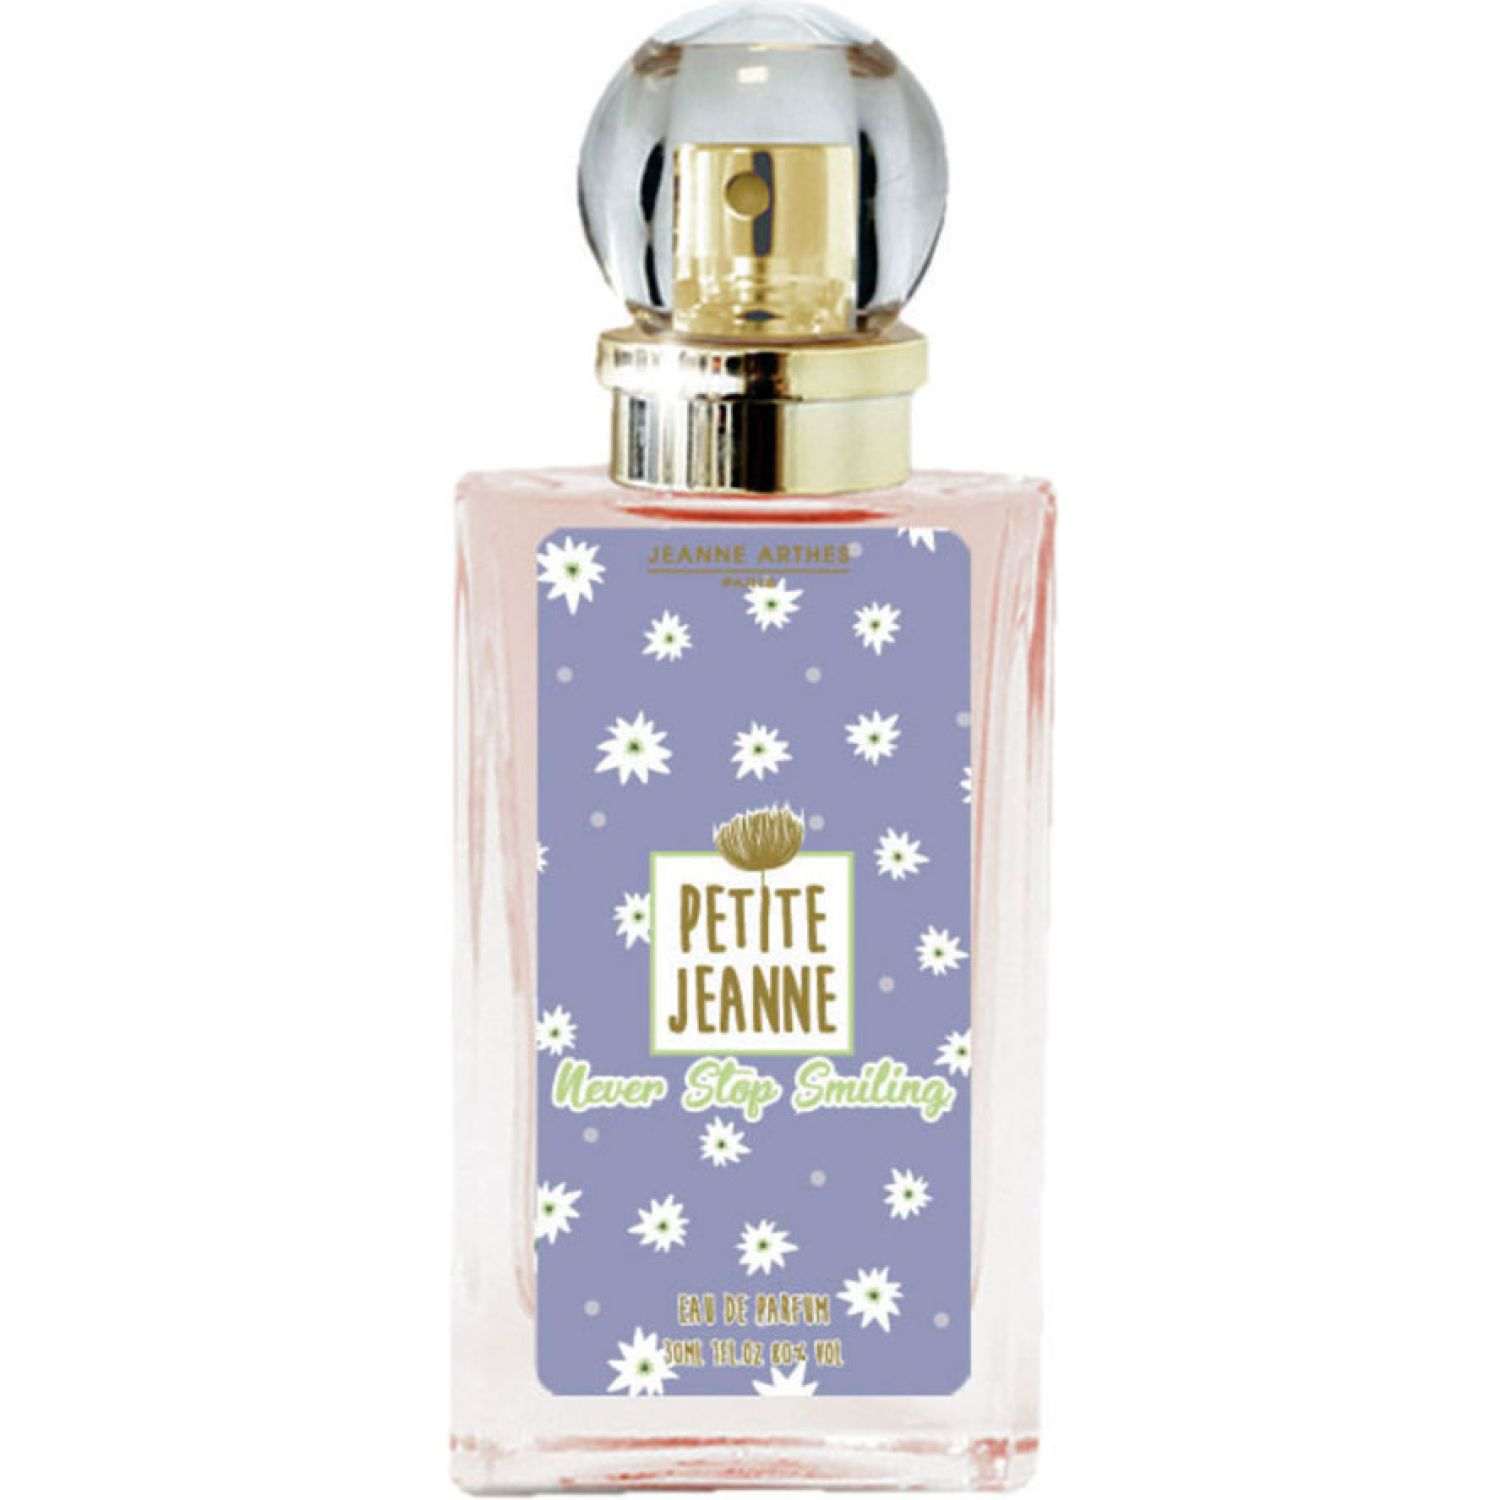 JEANNE ARTHES Petite Jeanne Never Stop Smiling 30ml Varios Colonia